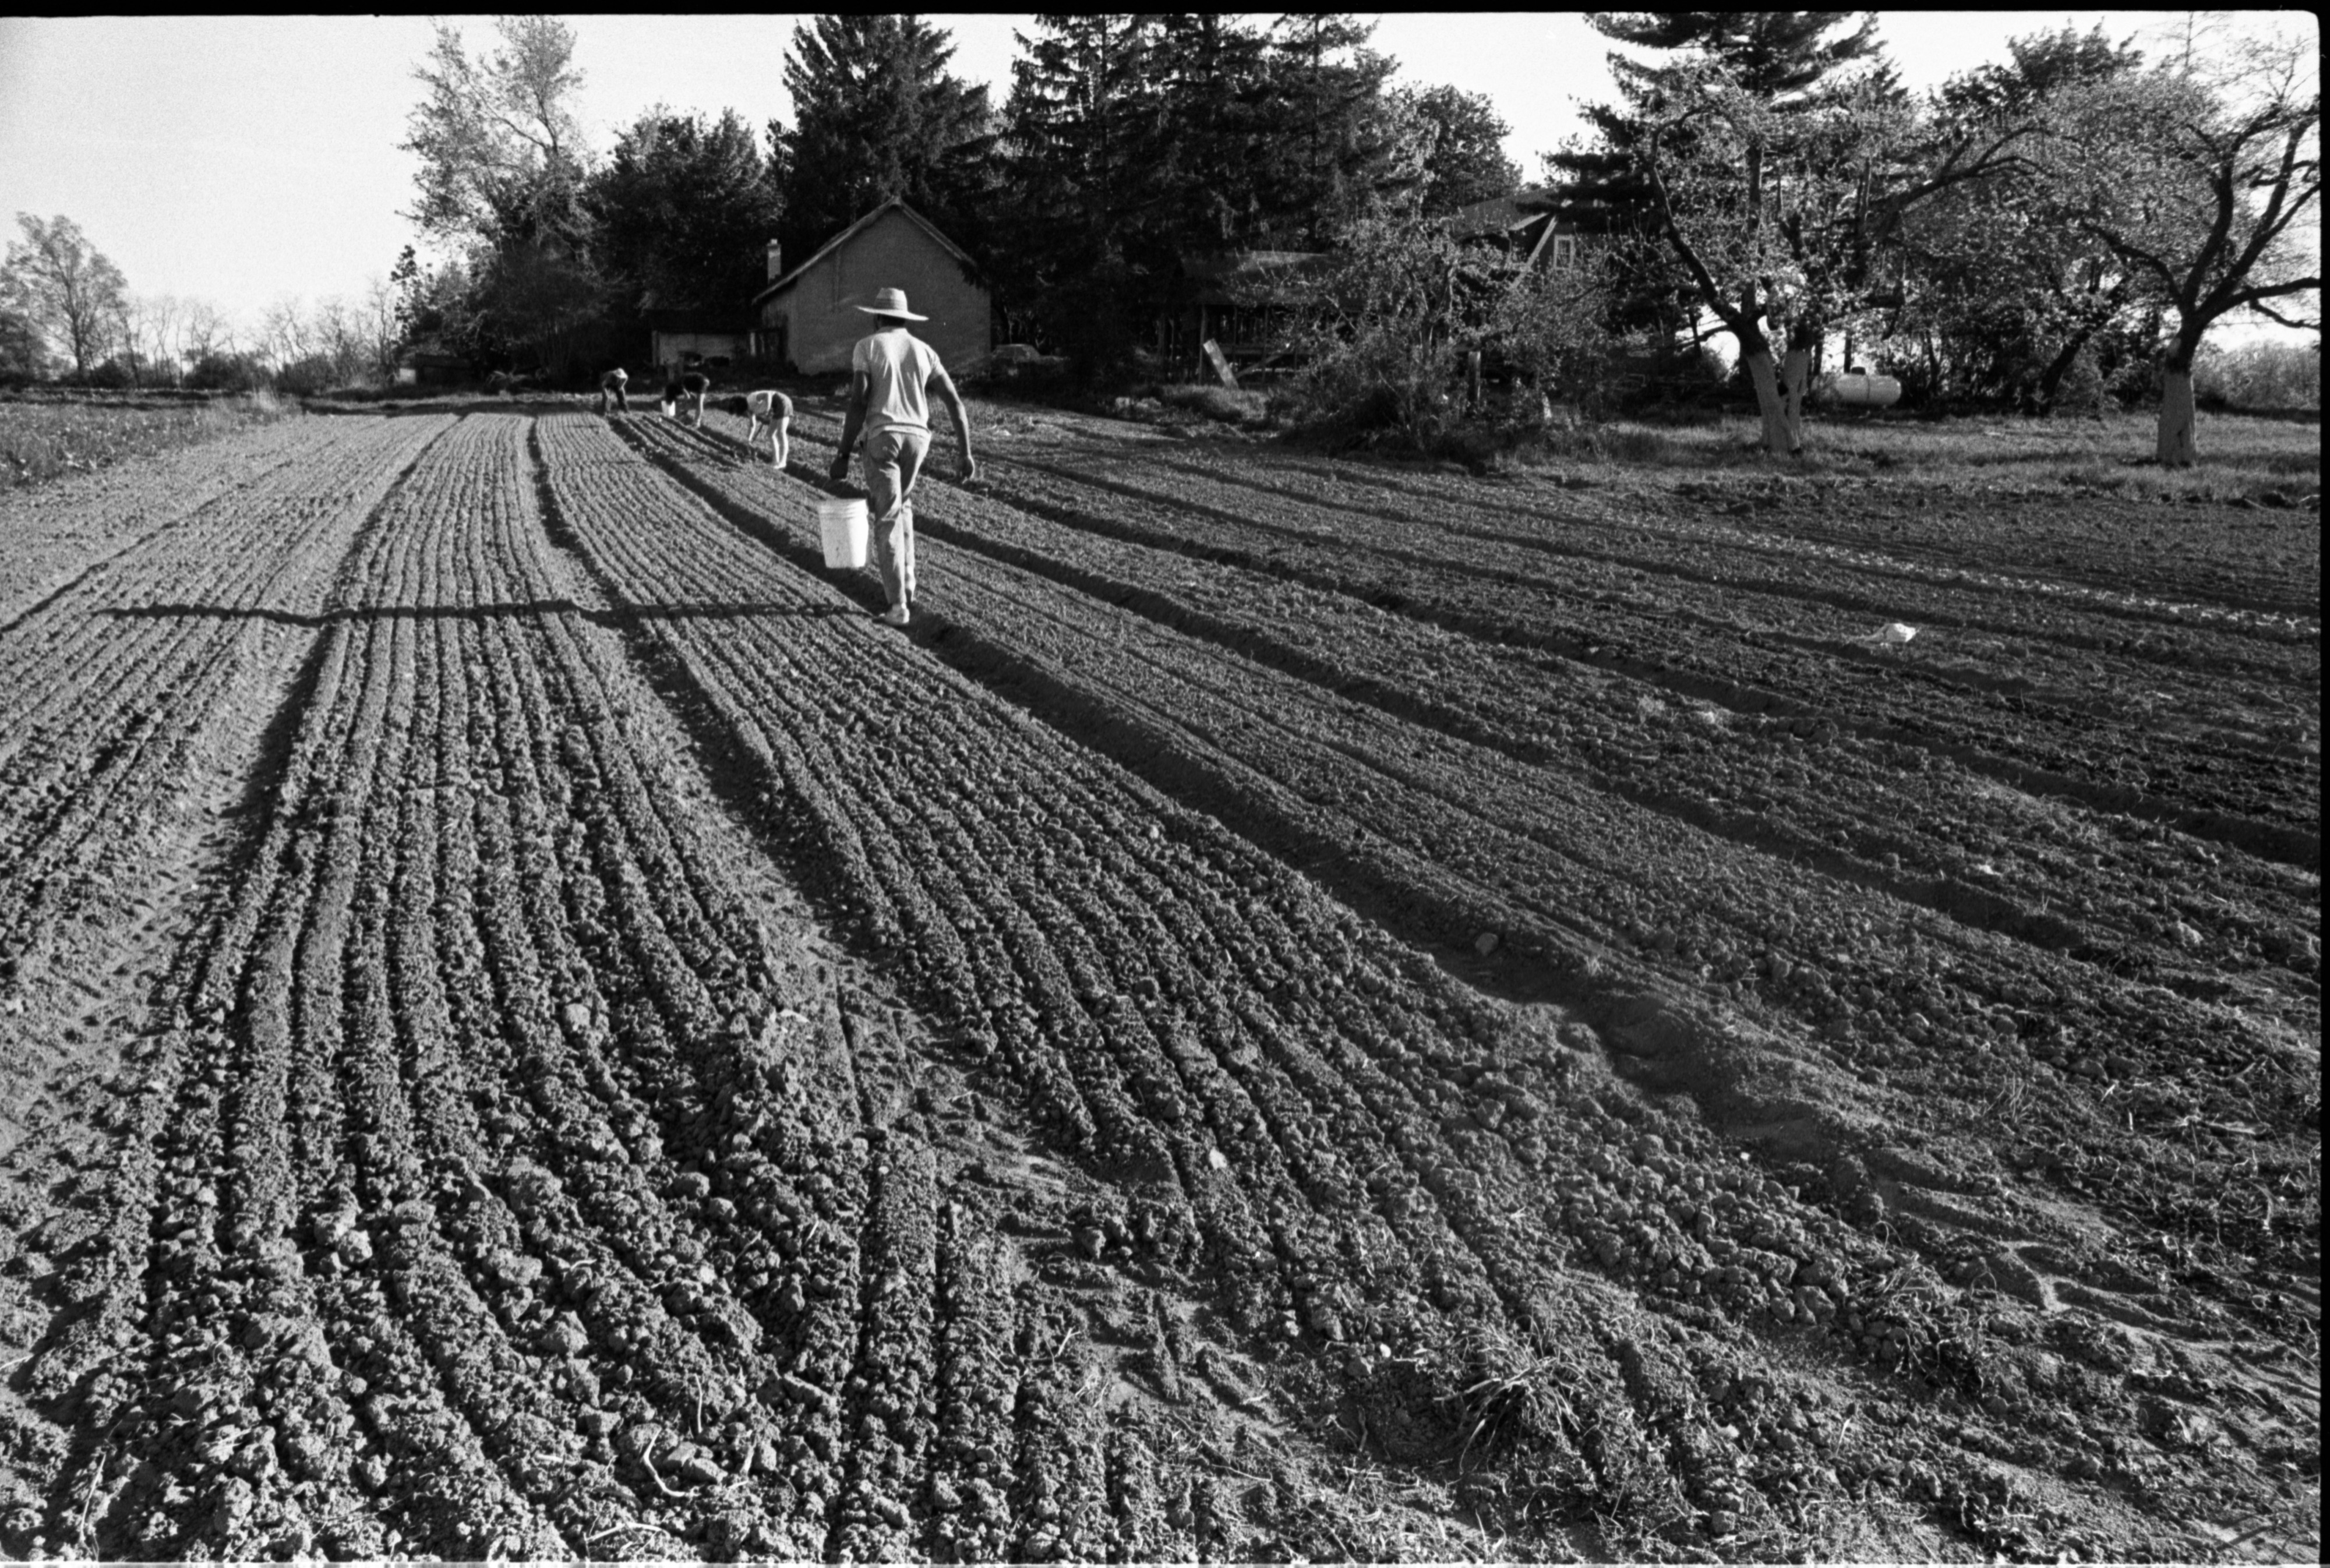 Workers In The Field At Community Farm, May 1988 image